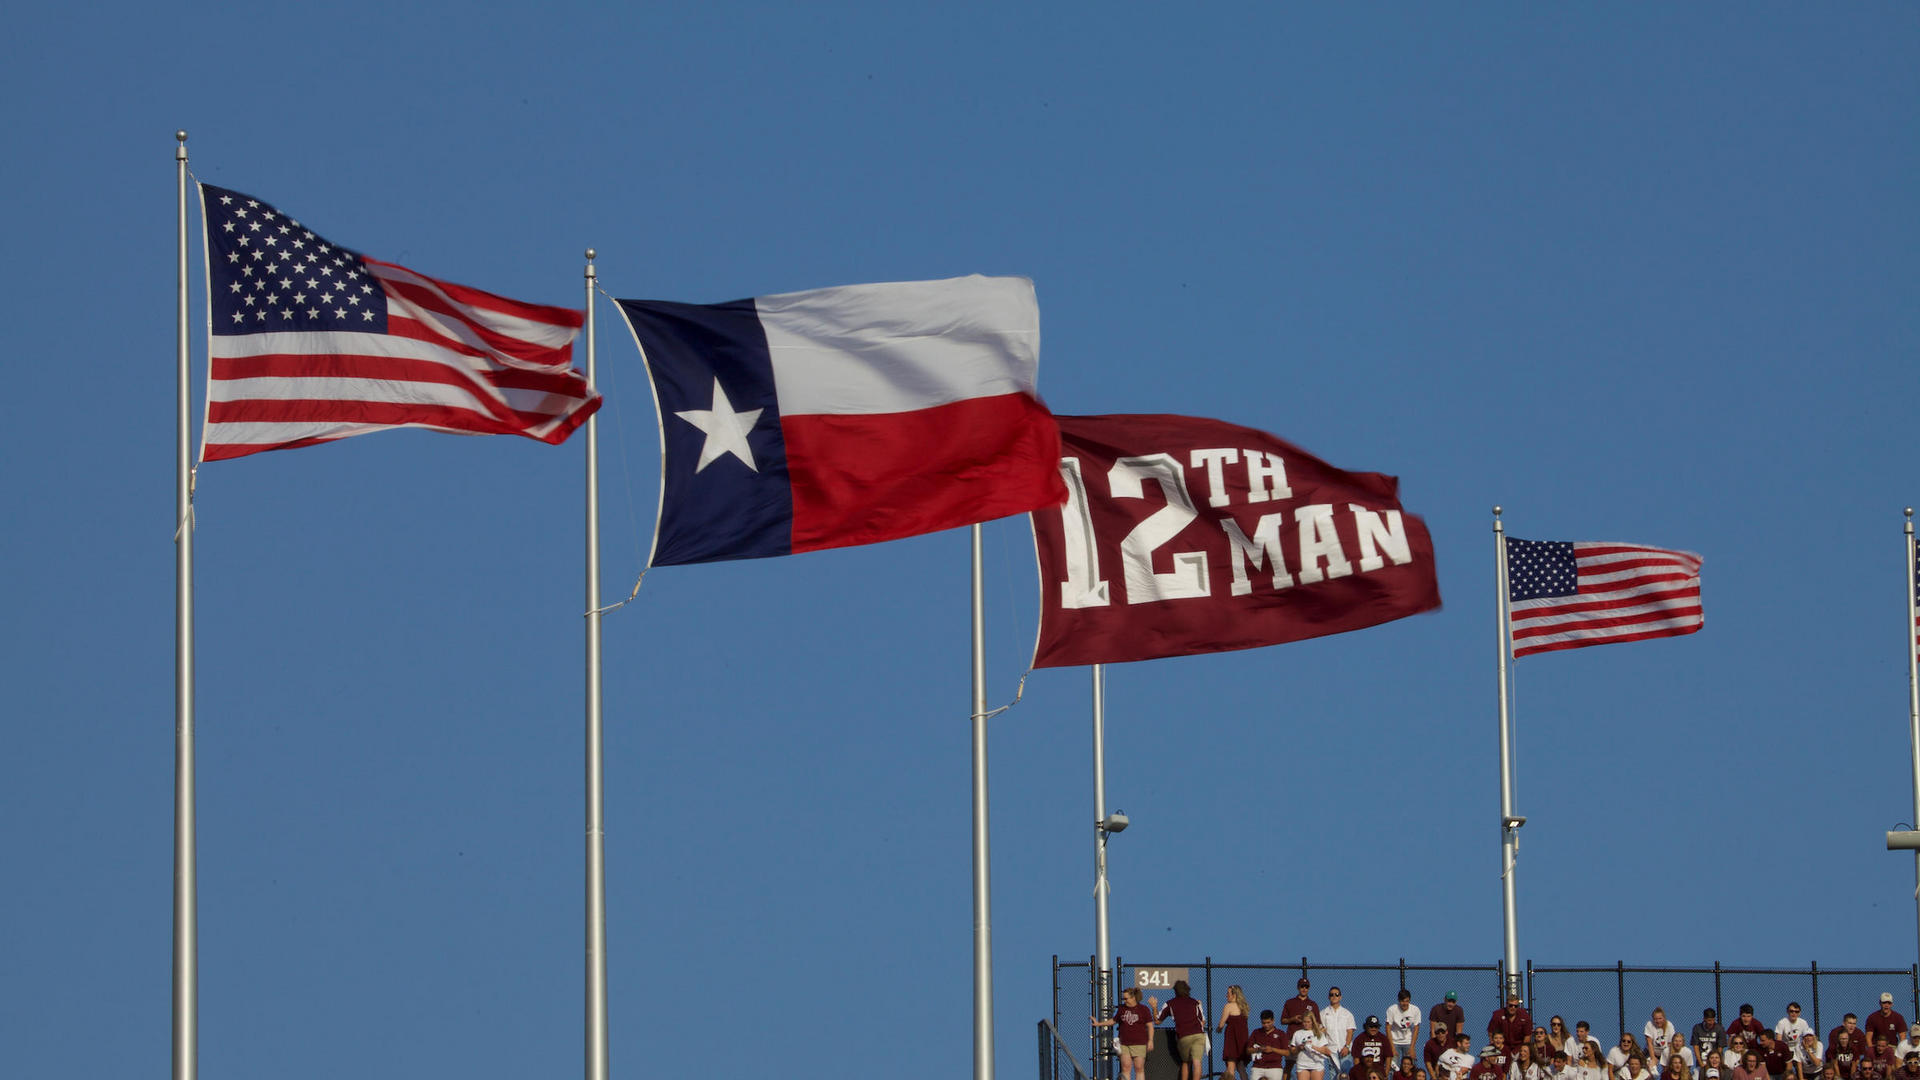 flags at texas a&m university